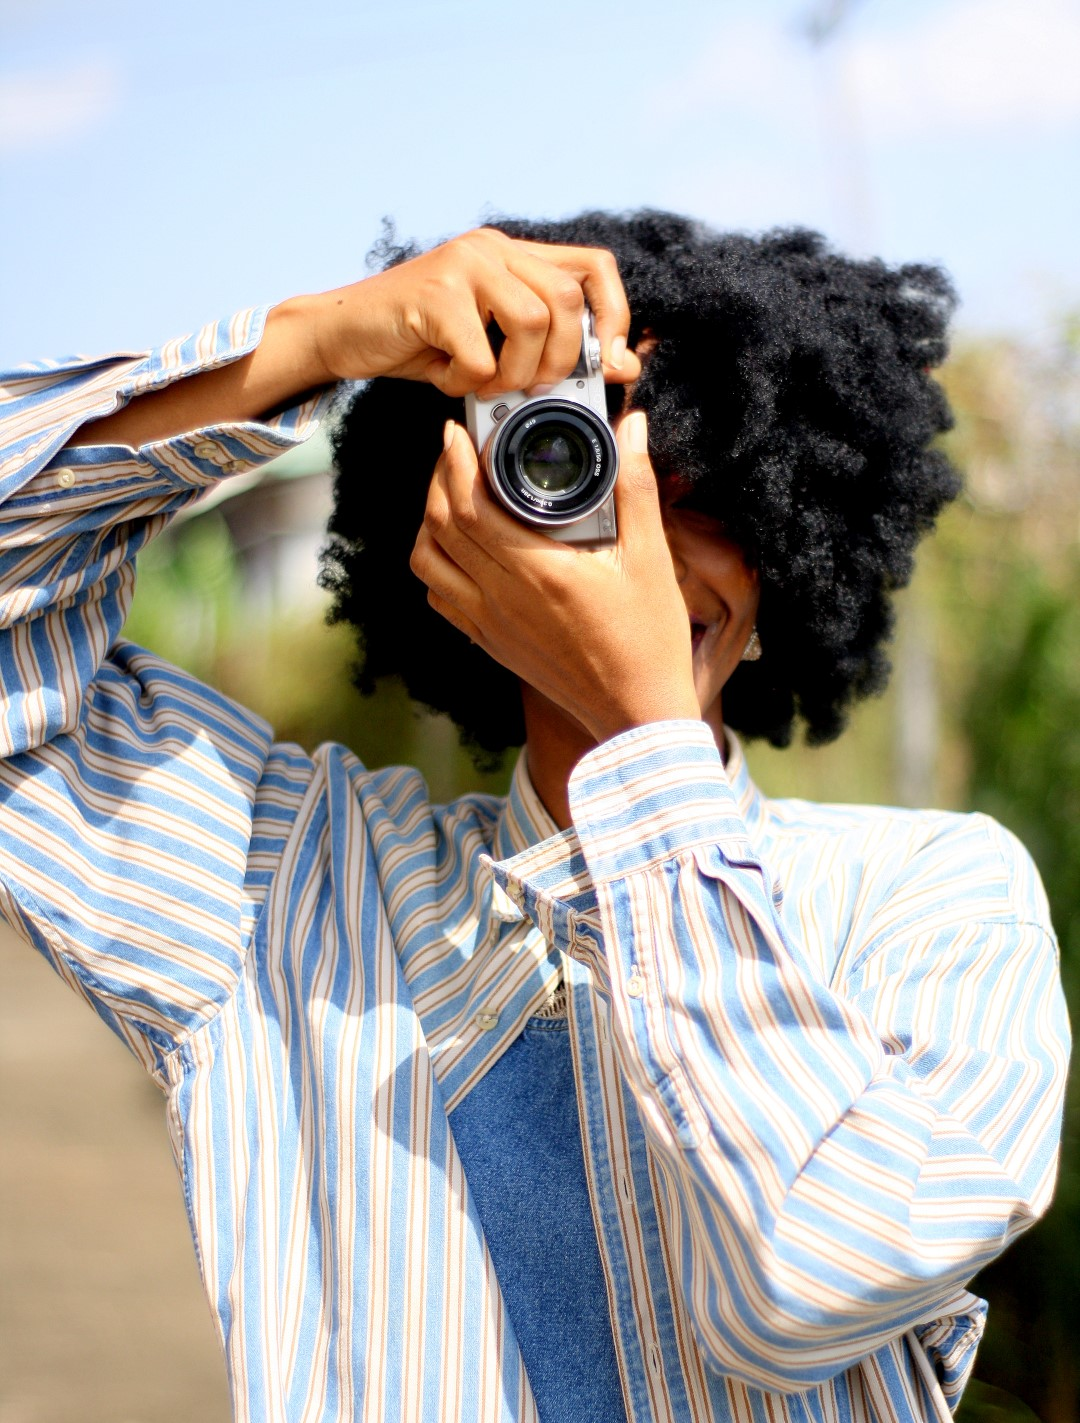 Sony A6000 Review, nigerian fashion blogger Cassie Daves holding a Sony A6000